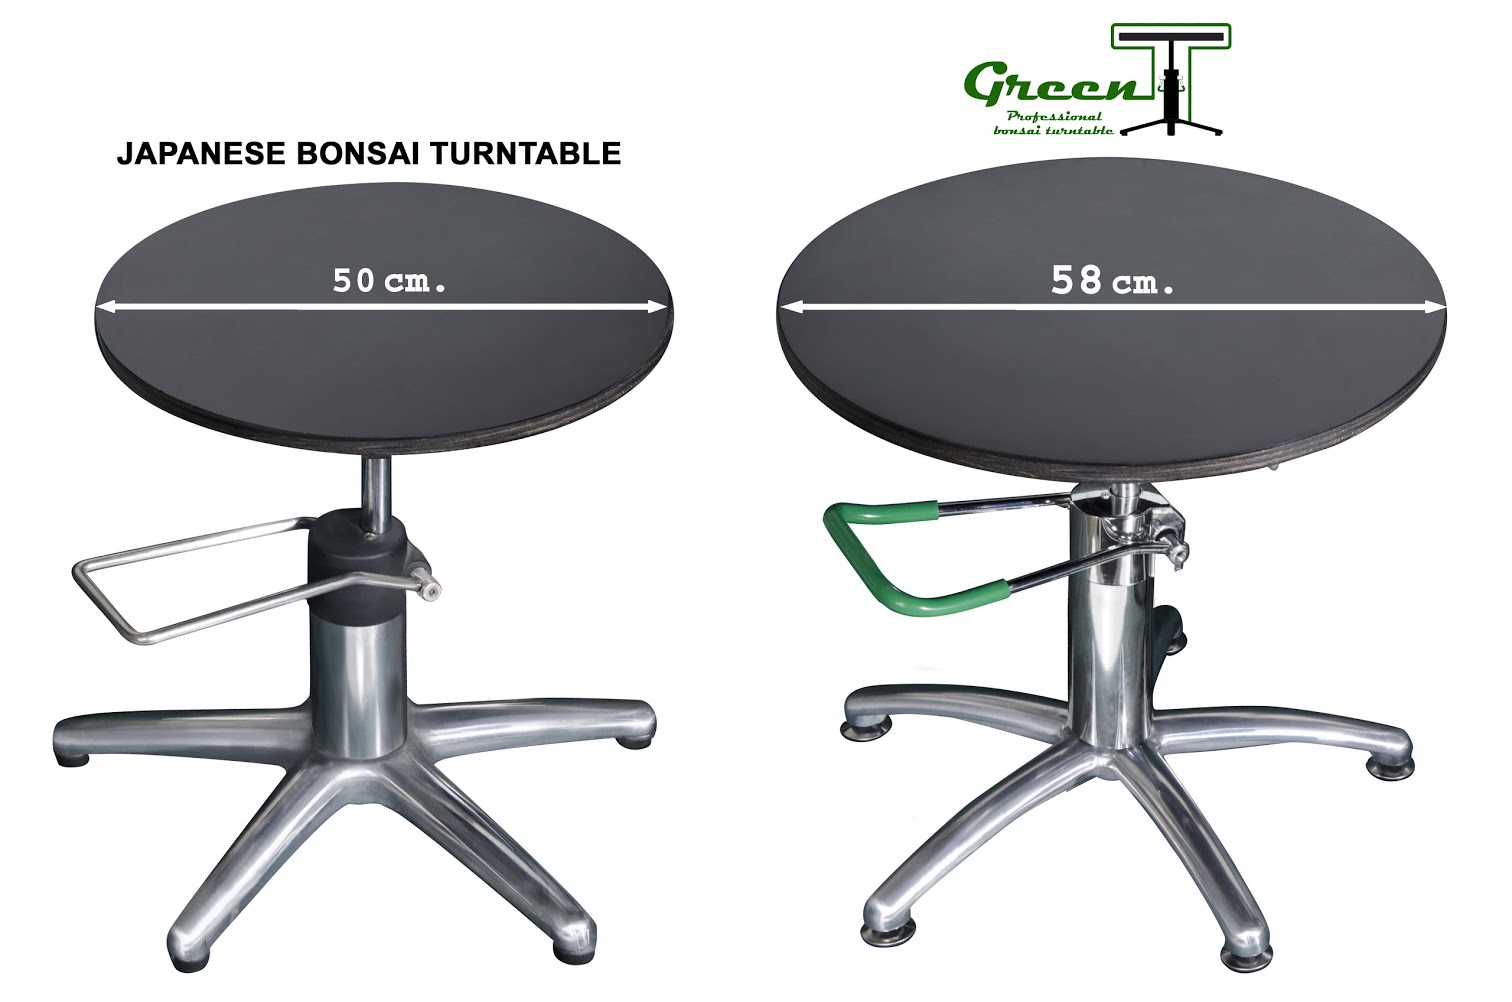 Green-T bonsai turntable